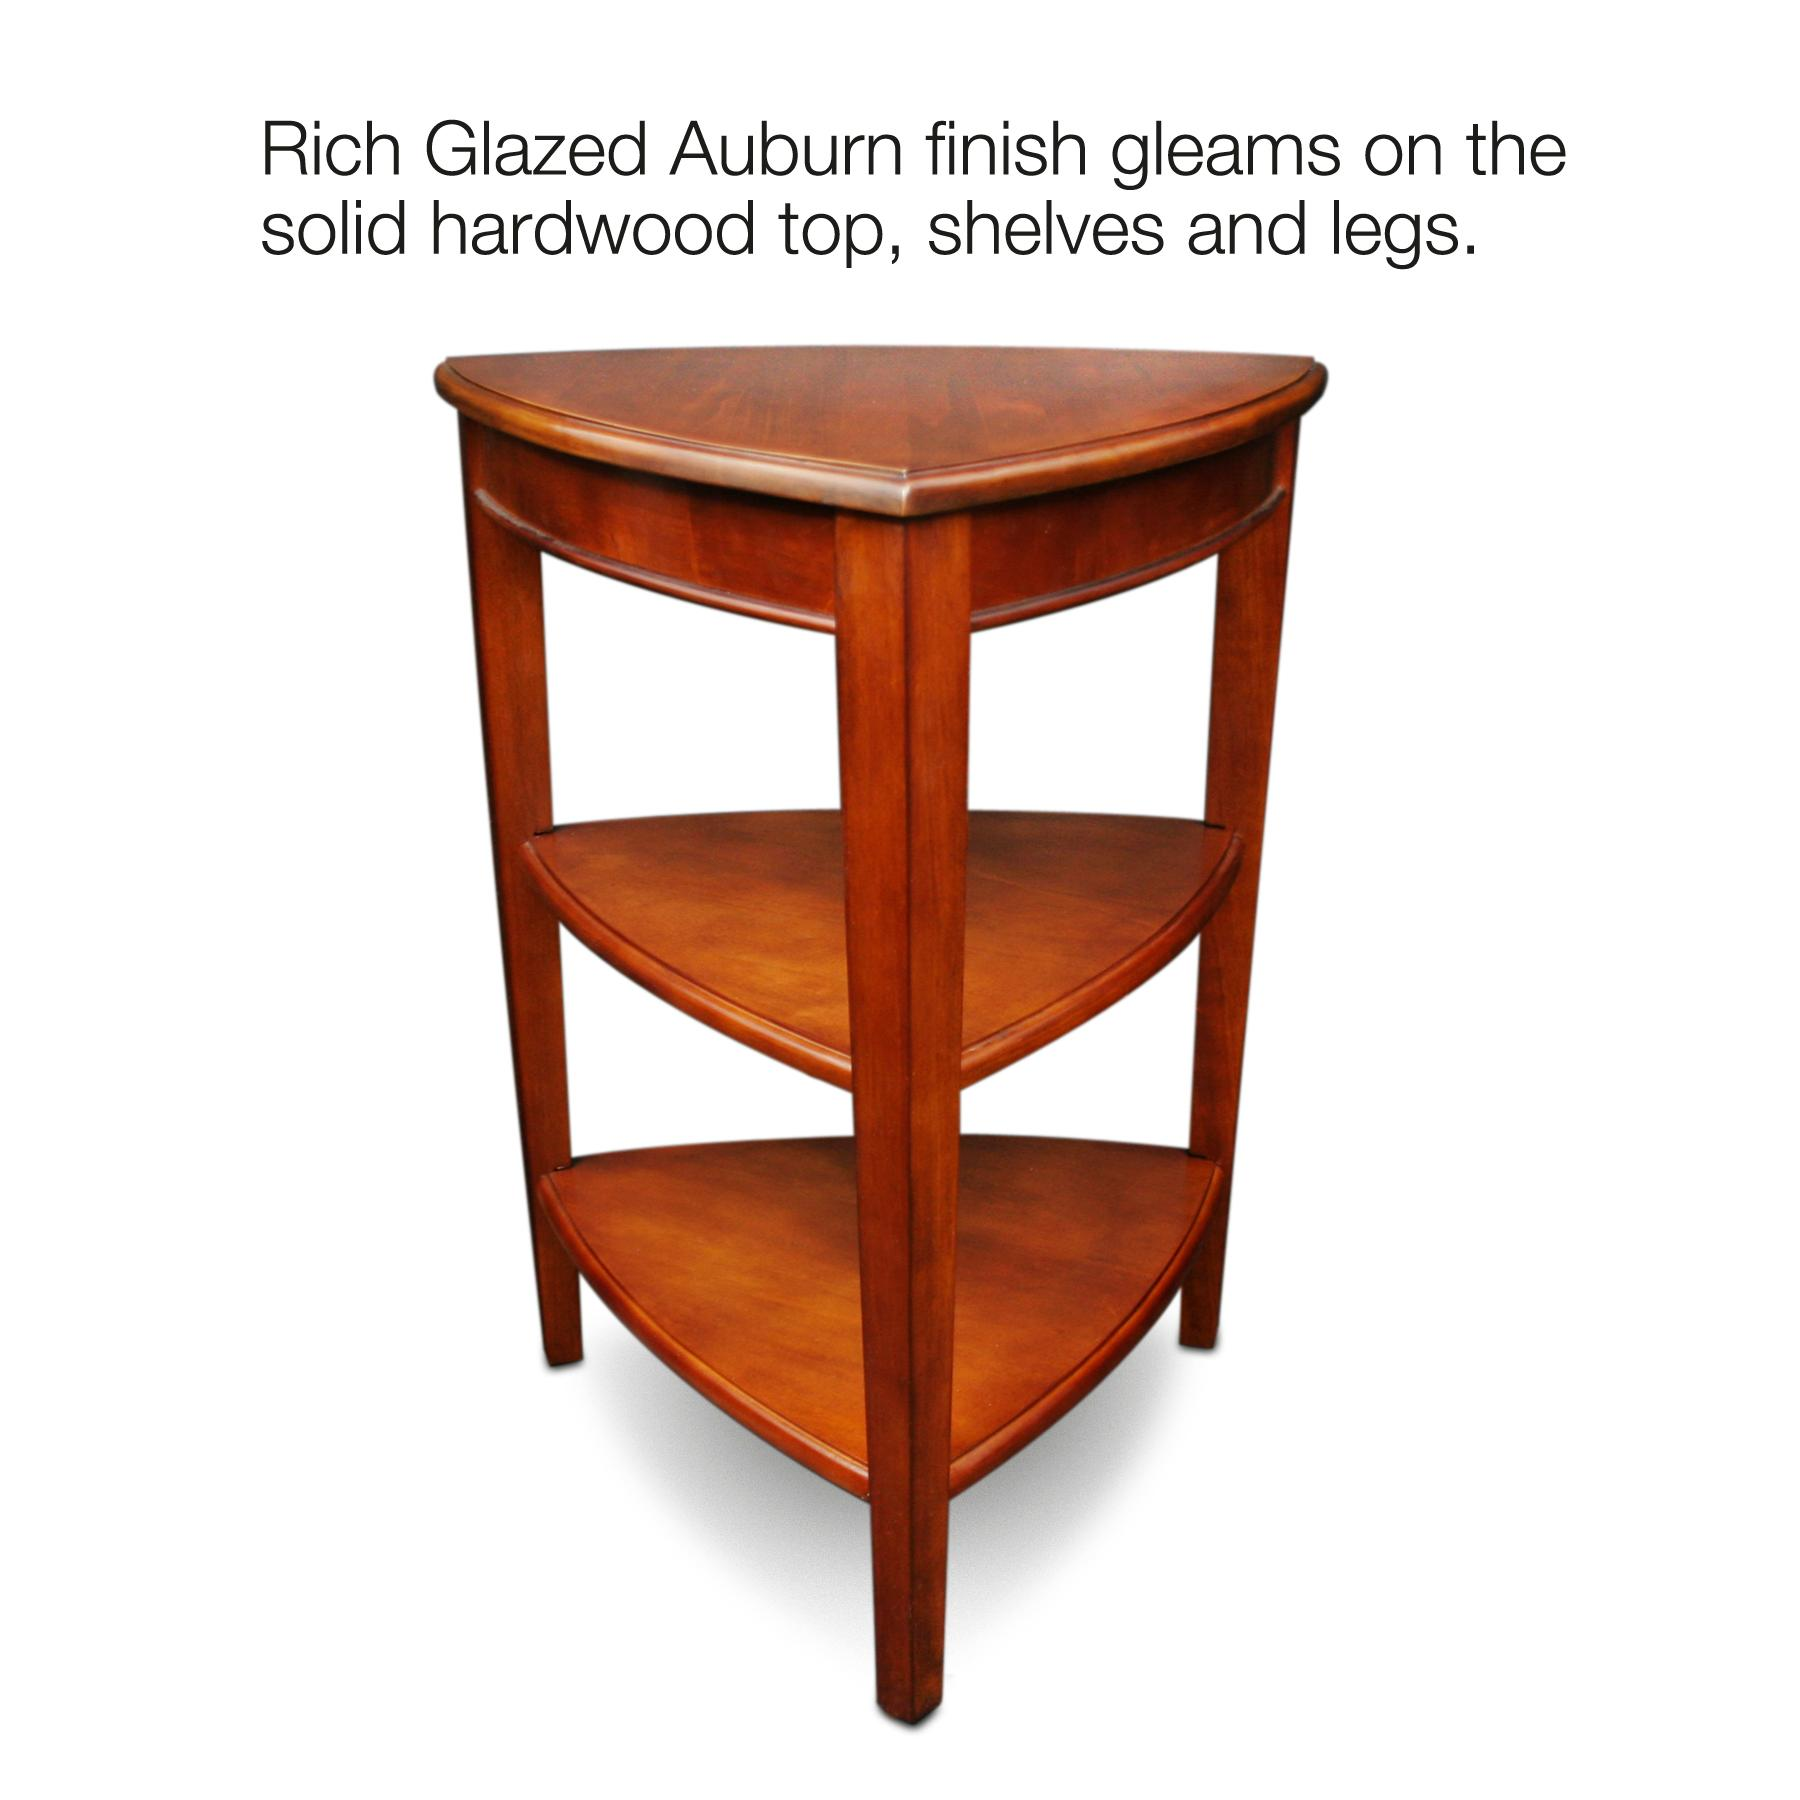 kitchen accent table winsome wood night stand leick shield tier corner kmart bedside drawers pier one mirrored desk orange lamp pool dining cherry coffee with storage clearance